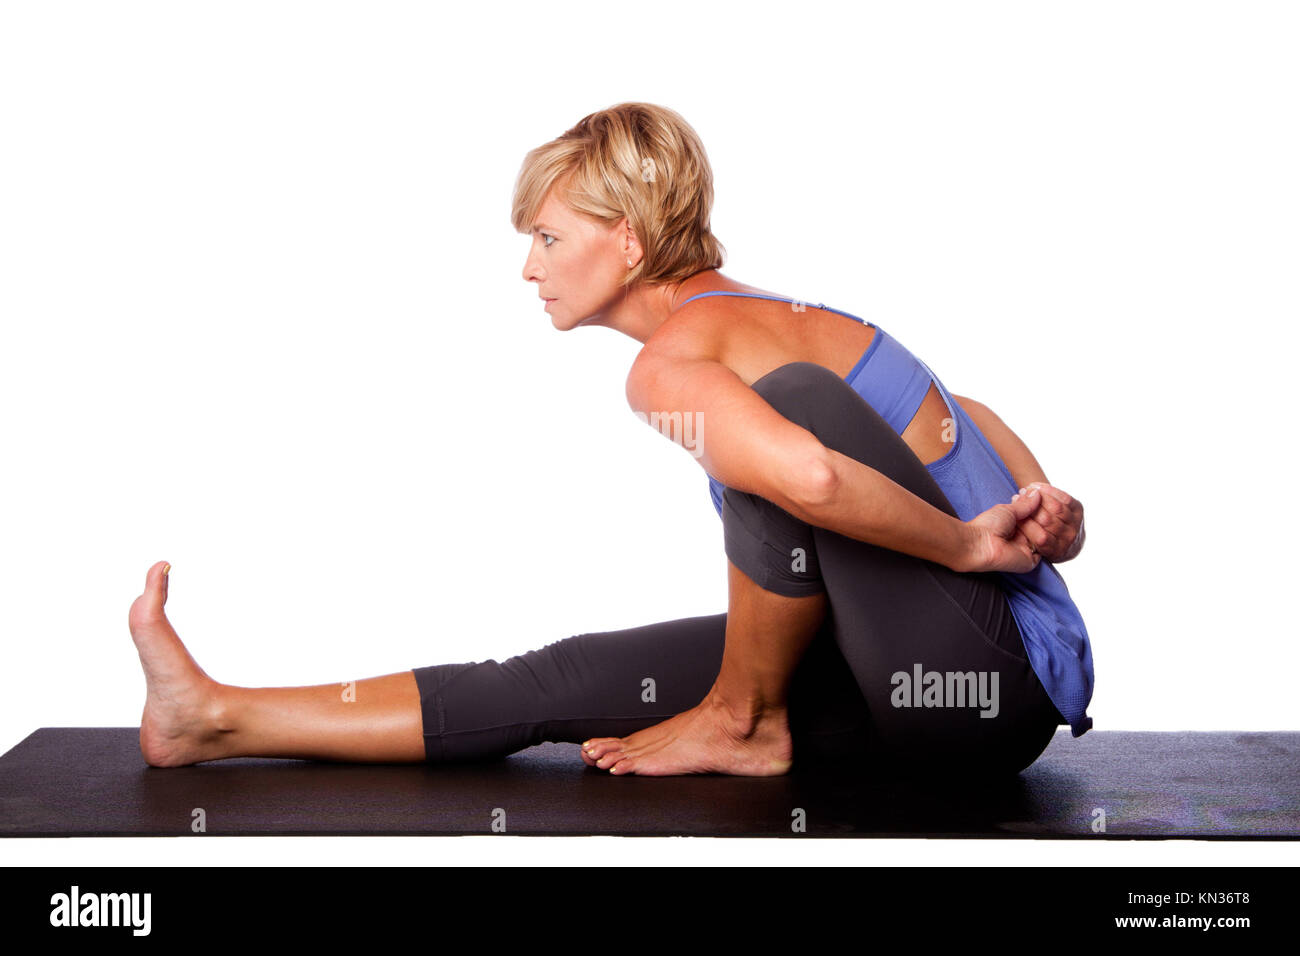 Twist Exercise Standing High Resolution Stock Photography and